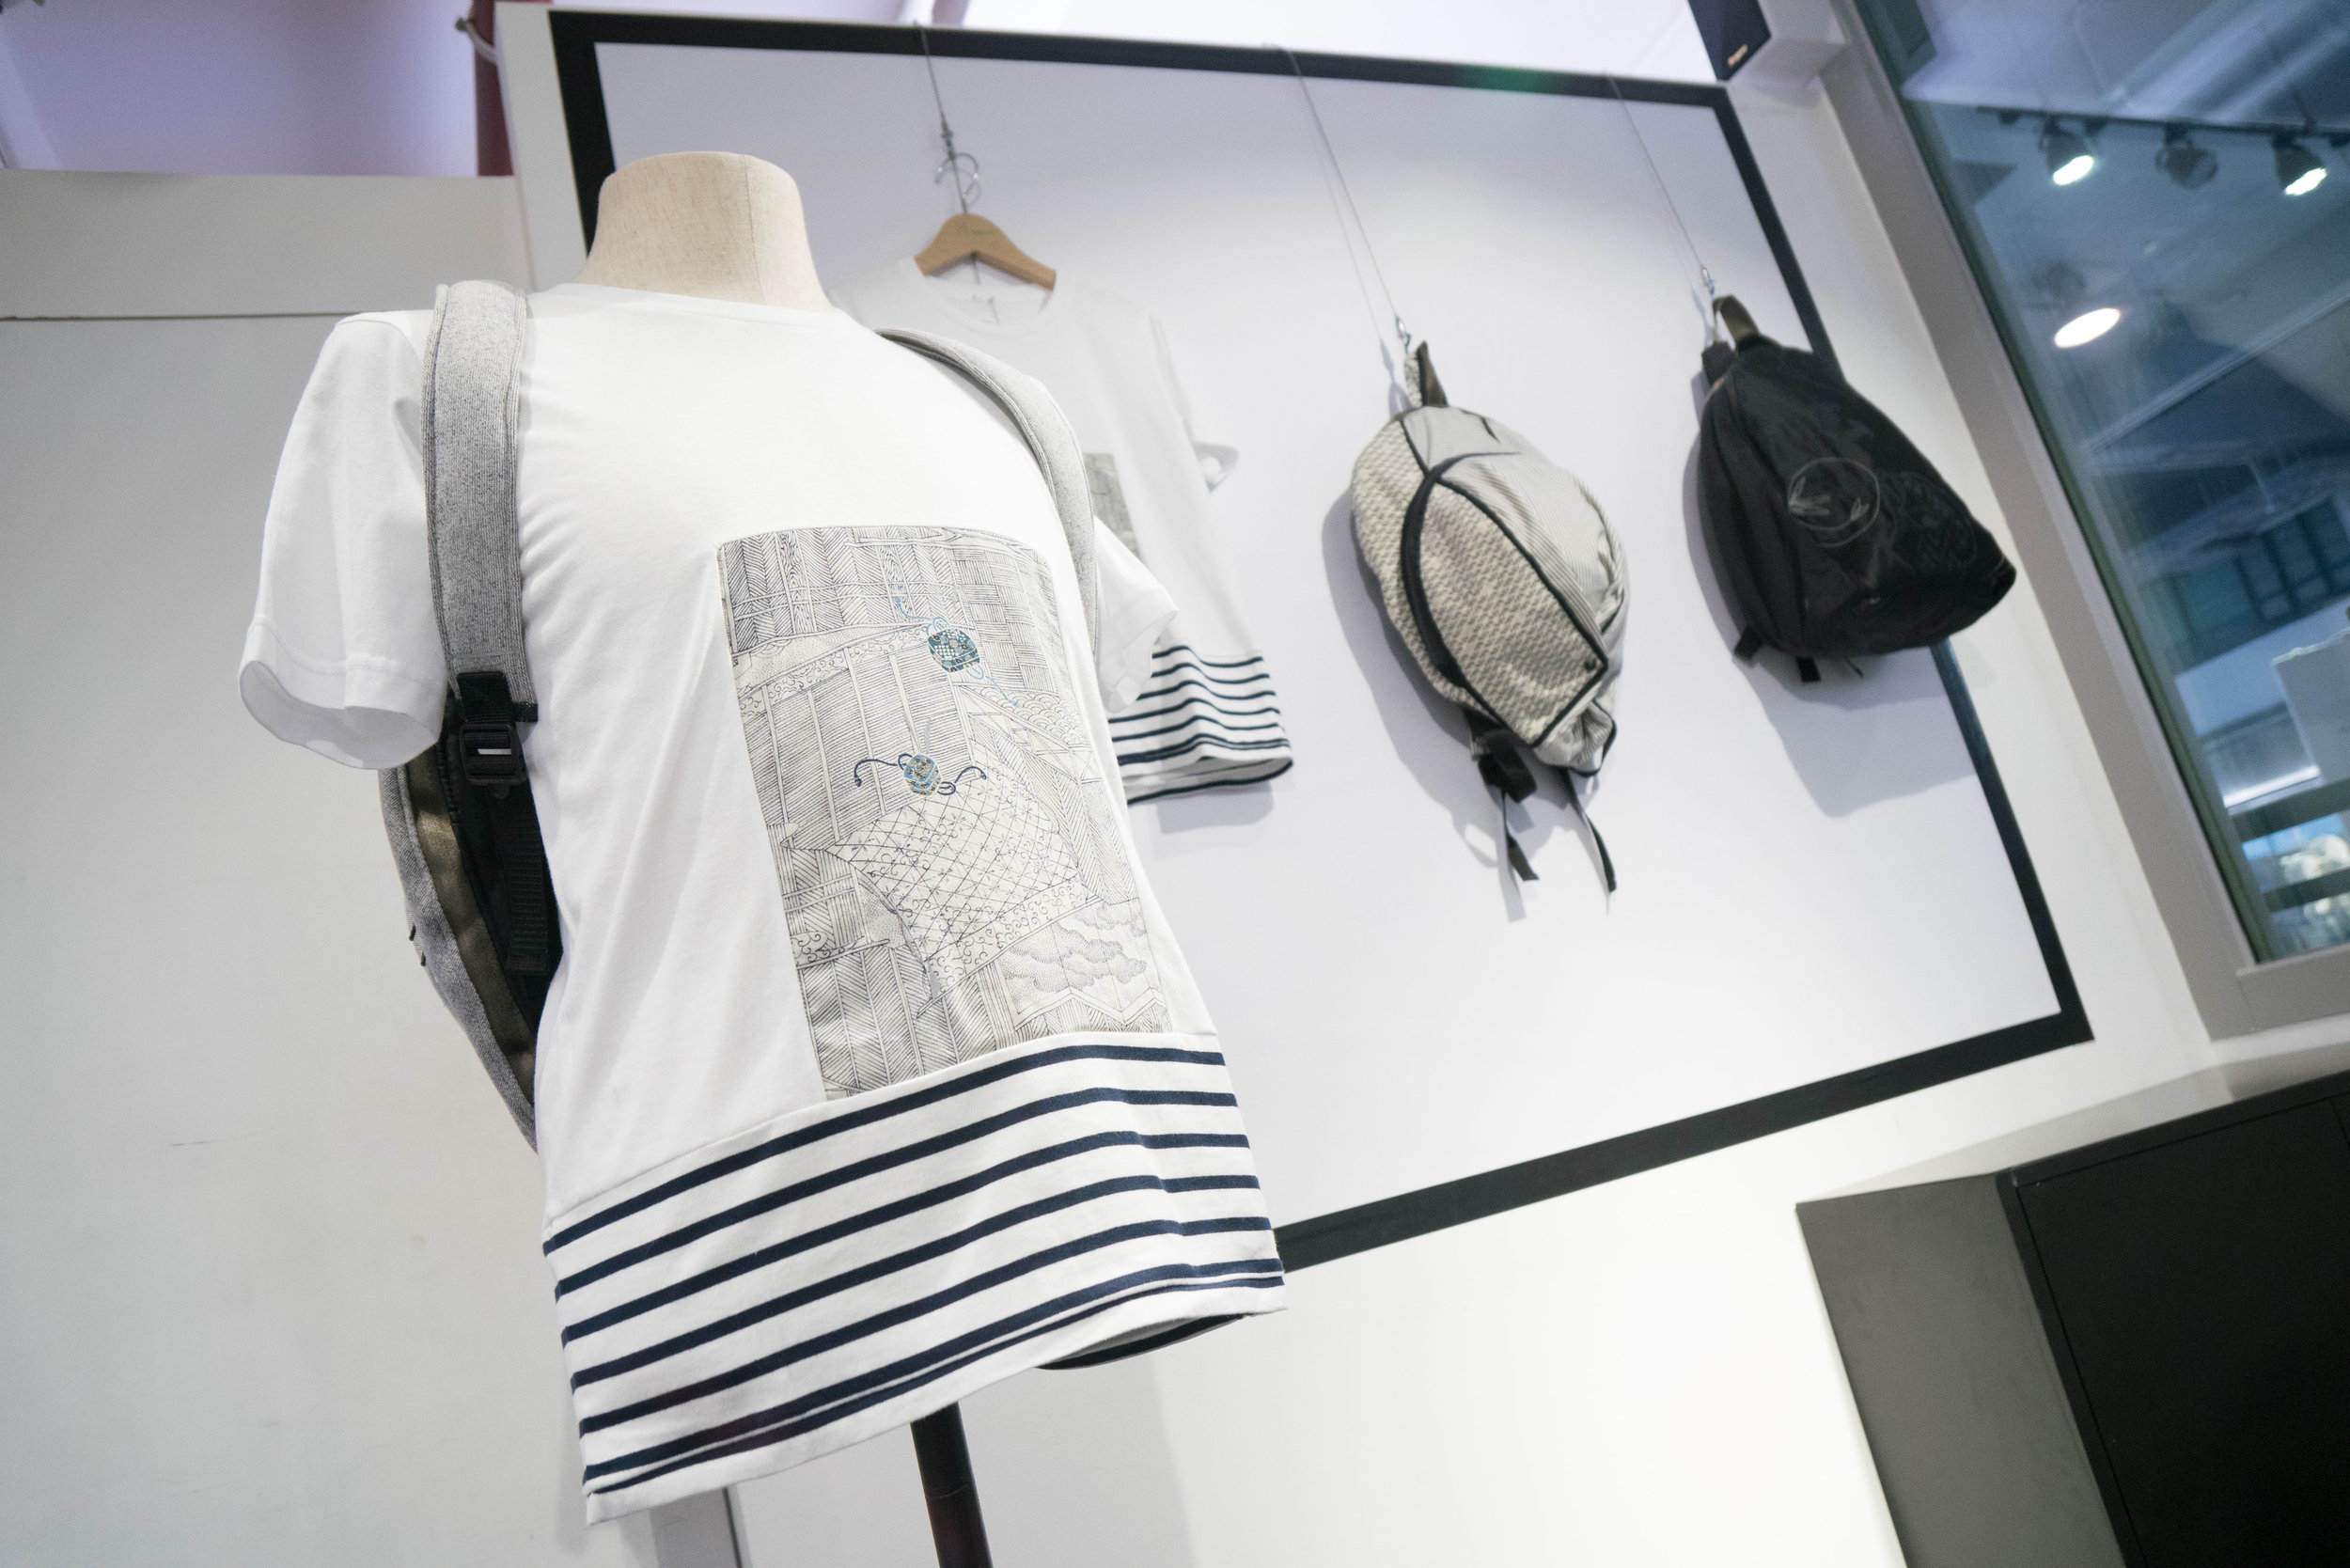 kapok x The EcoChic Design Award Alumni prize sustainable showcase launch event_Aug 11_Clementine Sandner4.jpg